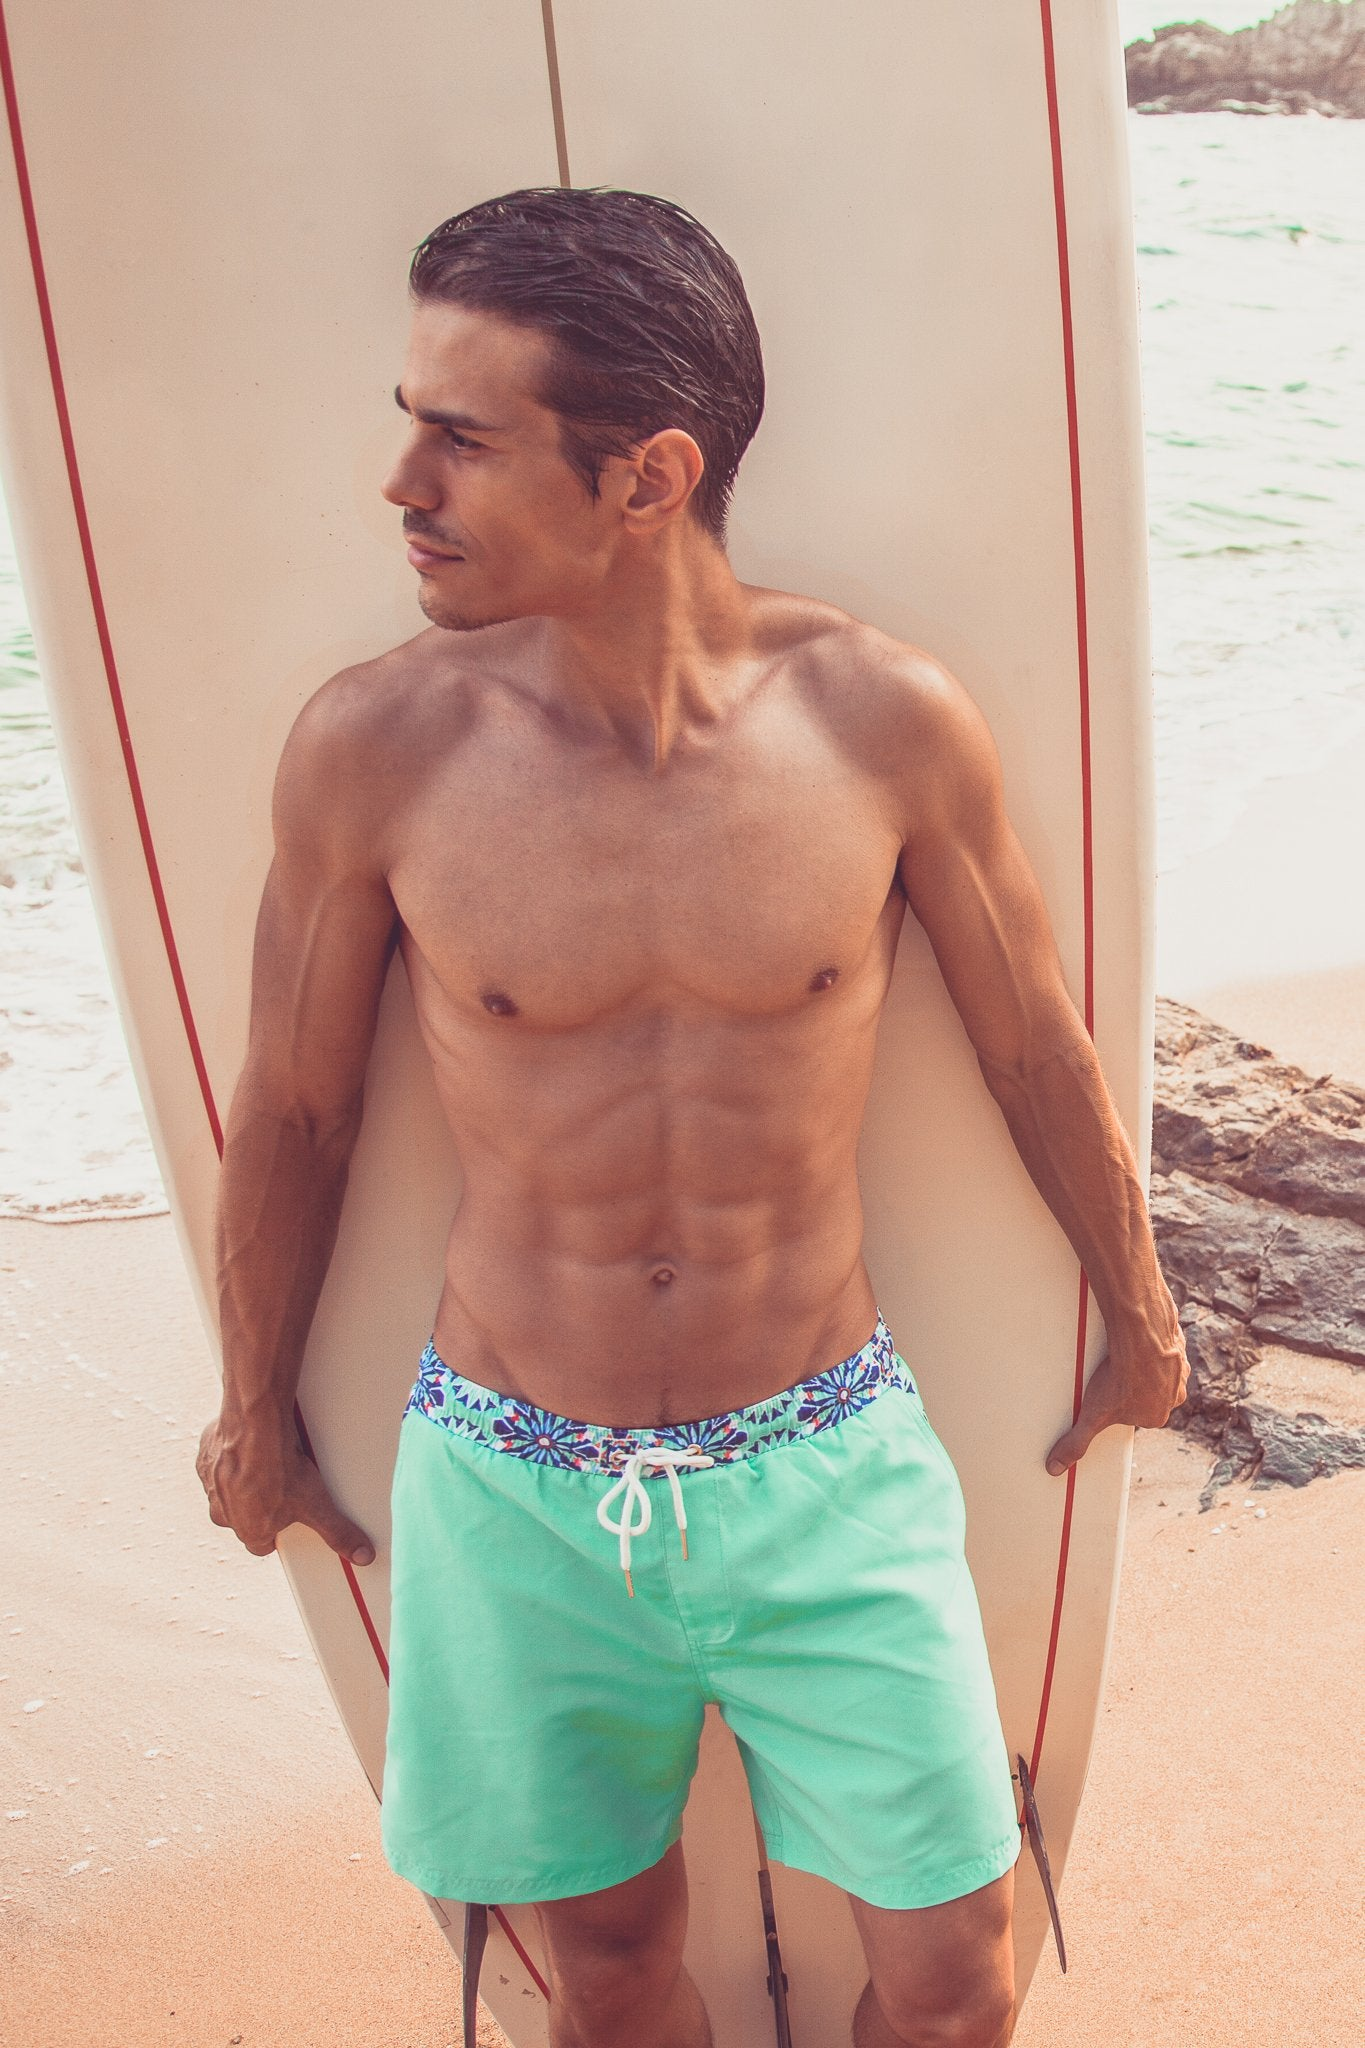 Zillij Swim Trunks - Trunks by Mer Culture Swimwear Hong Kong